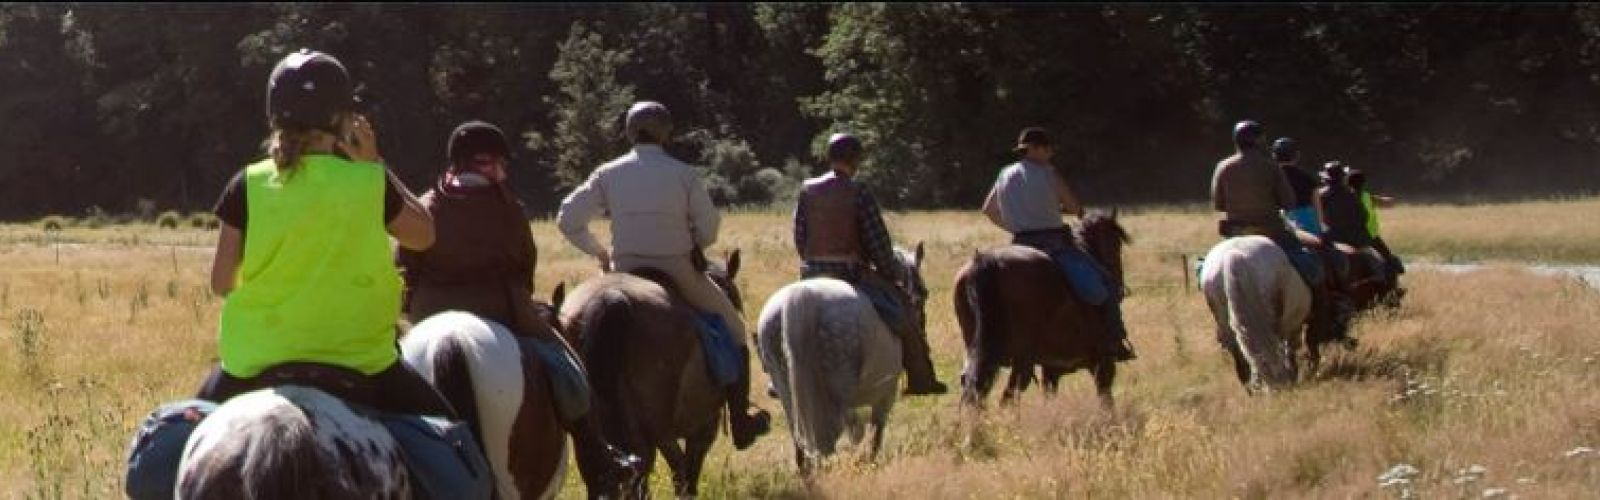 group of people riding horses through field